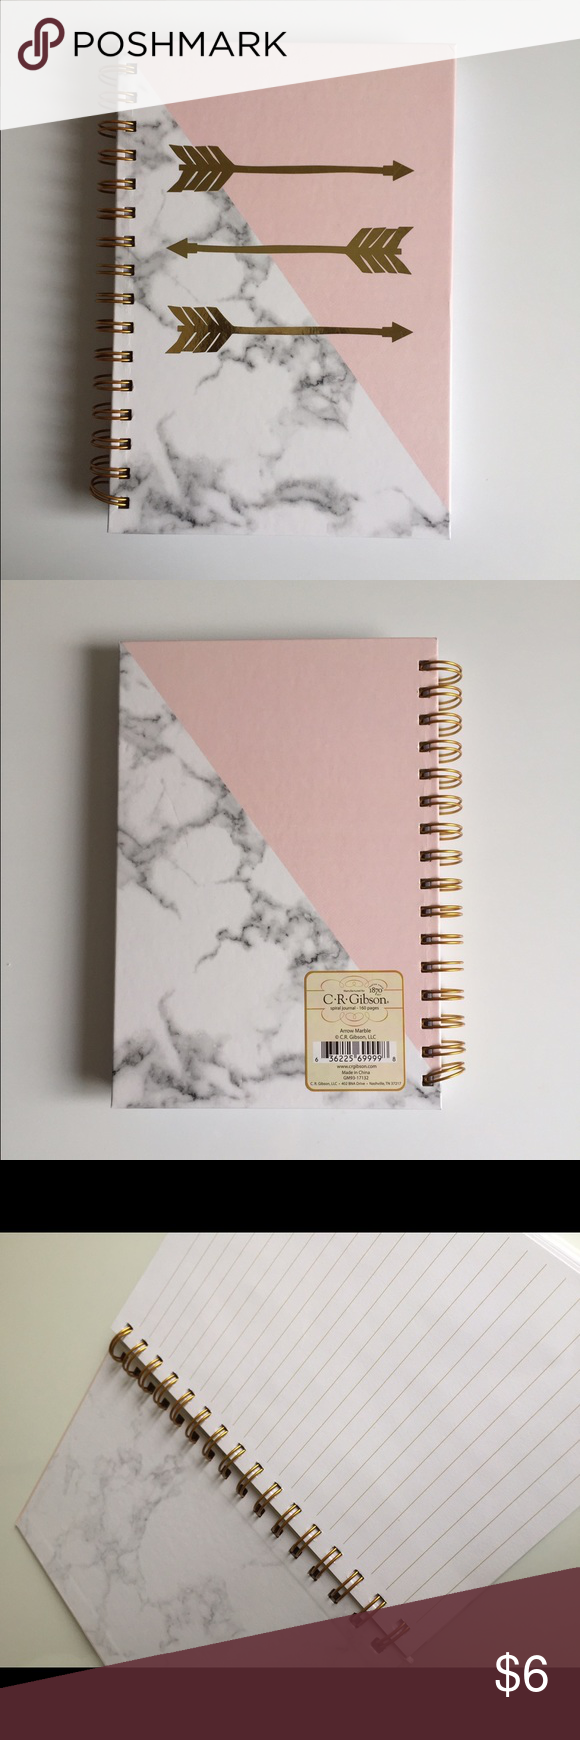 Marbled Notebook Brand New Cute Notebook Accessories Diy